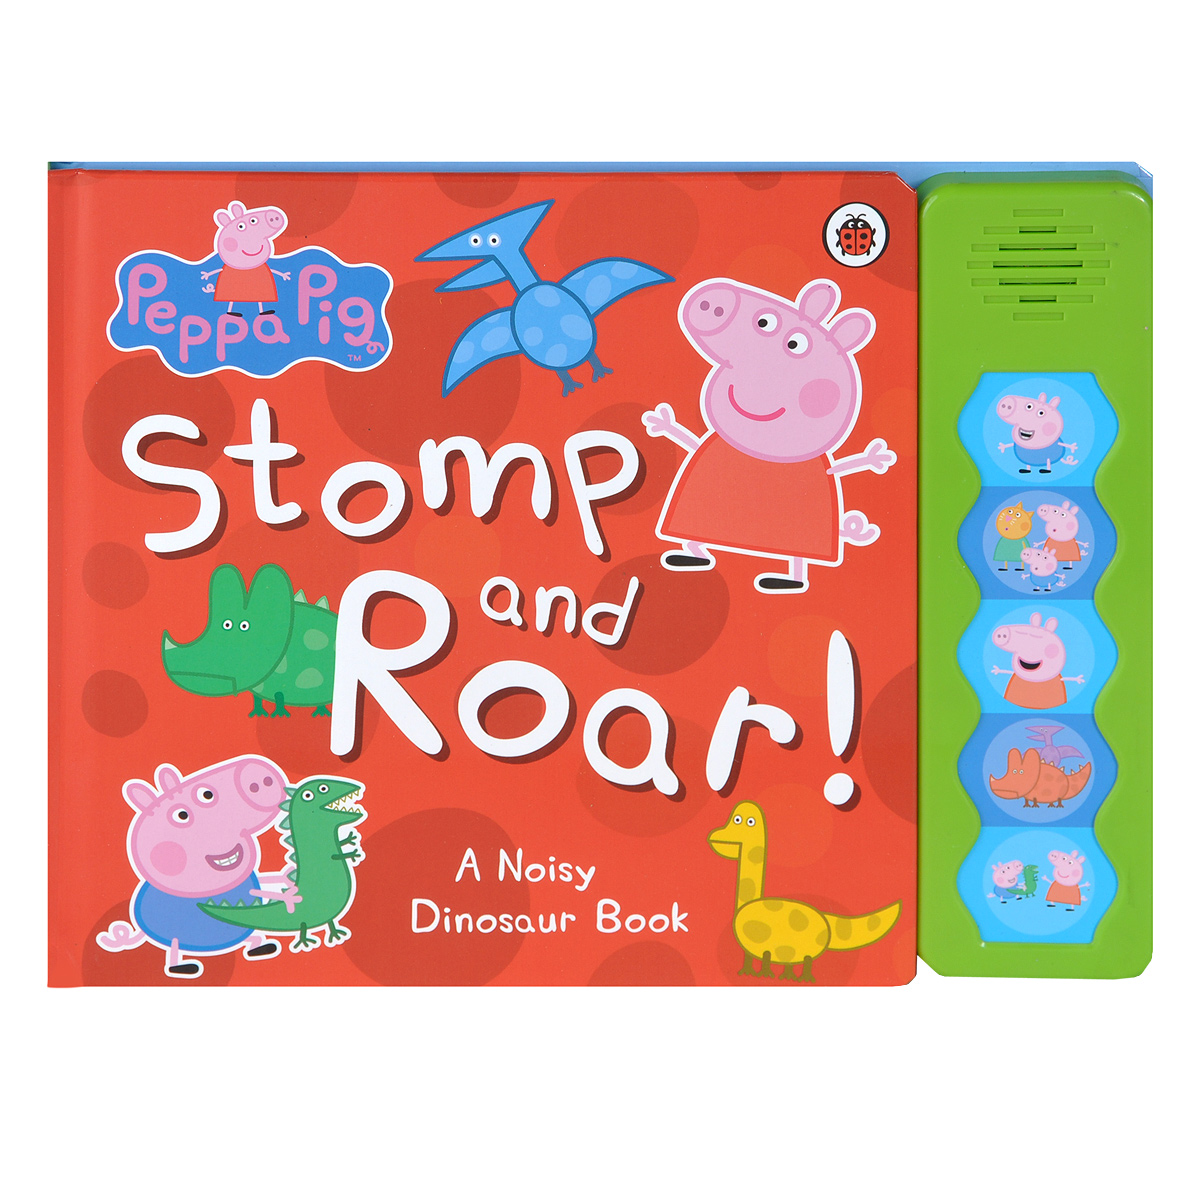 Peppa Pig: Stomp and Roar! Книжка-игрушка chris wormell george and the dragon